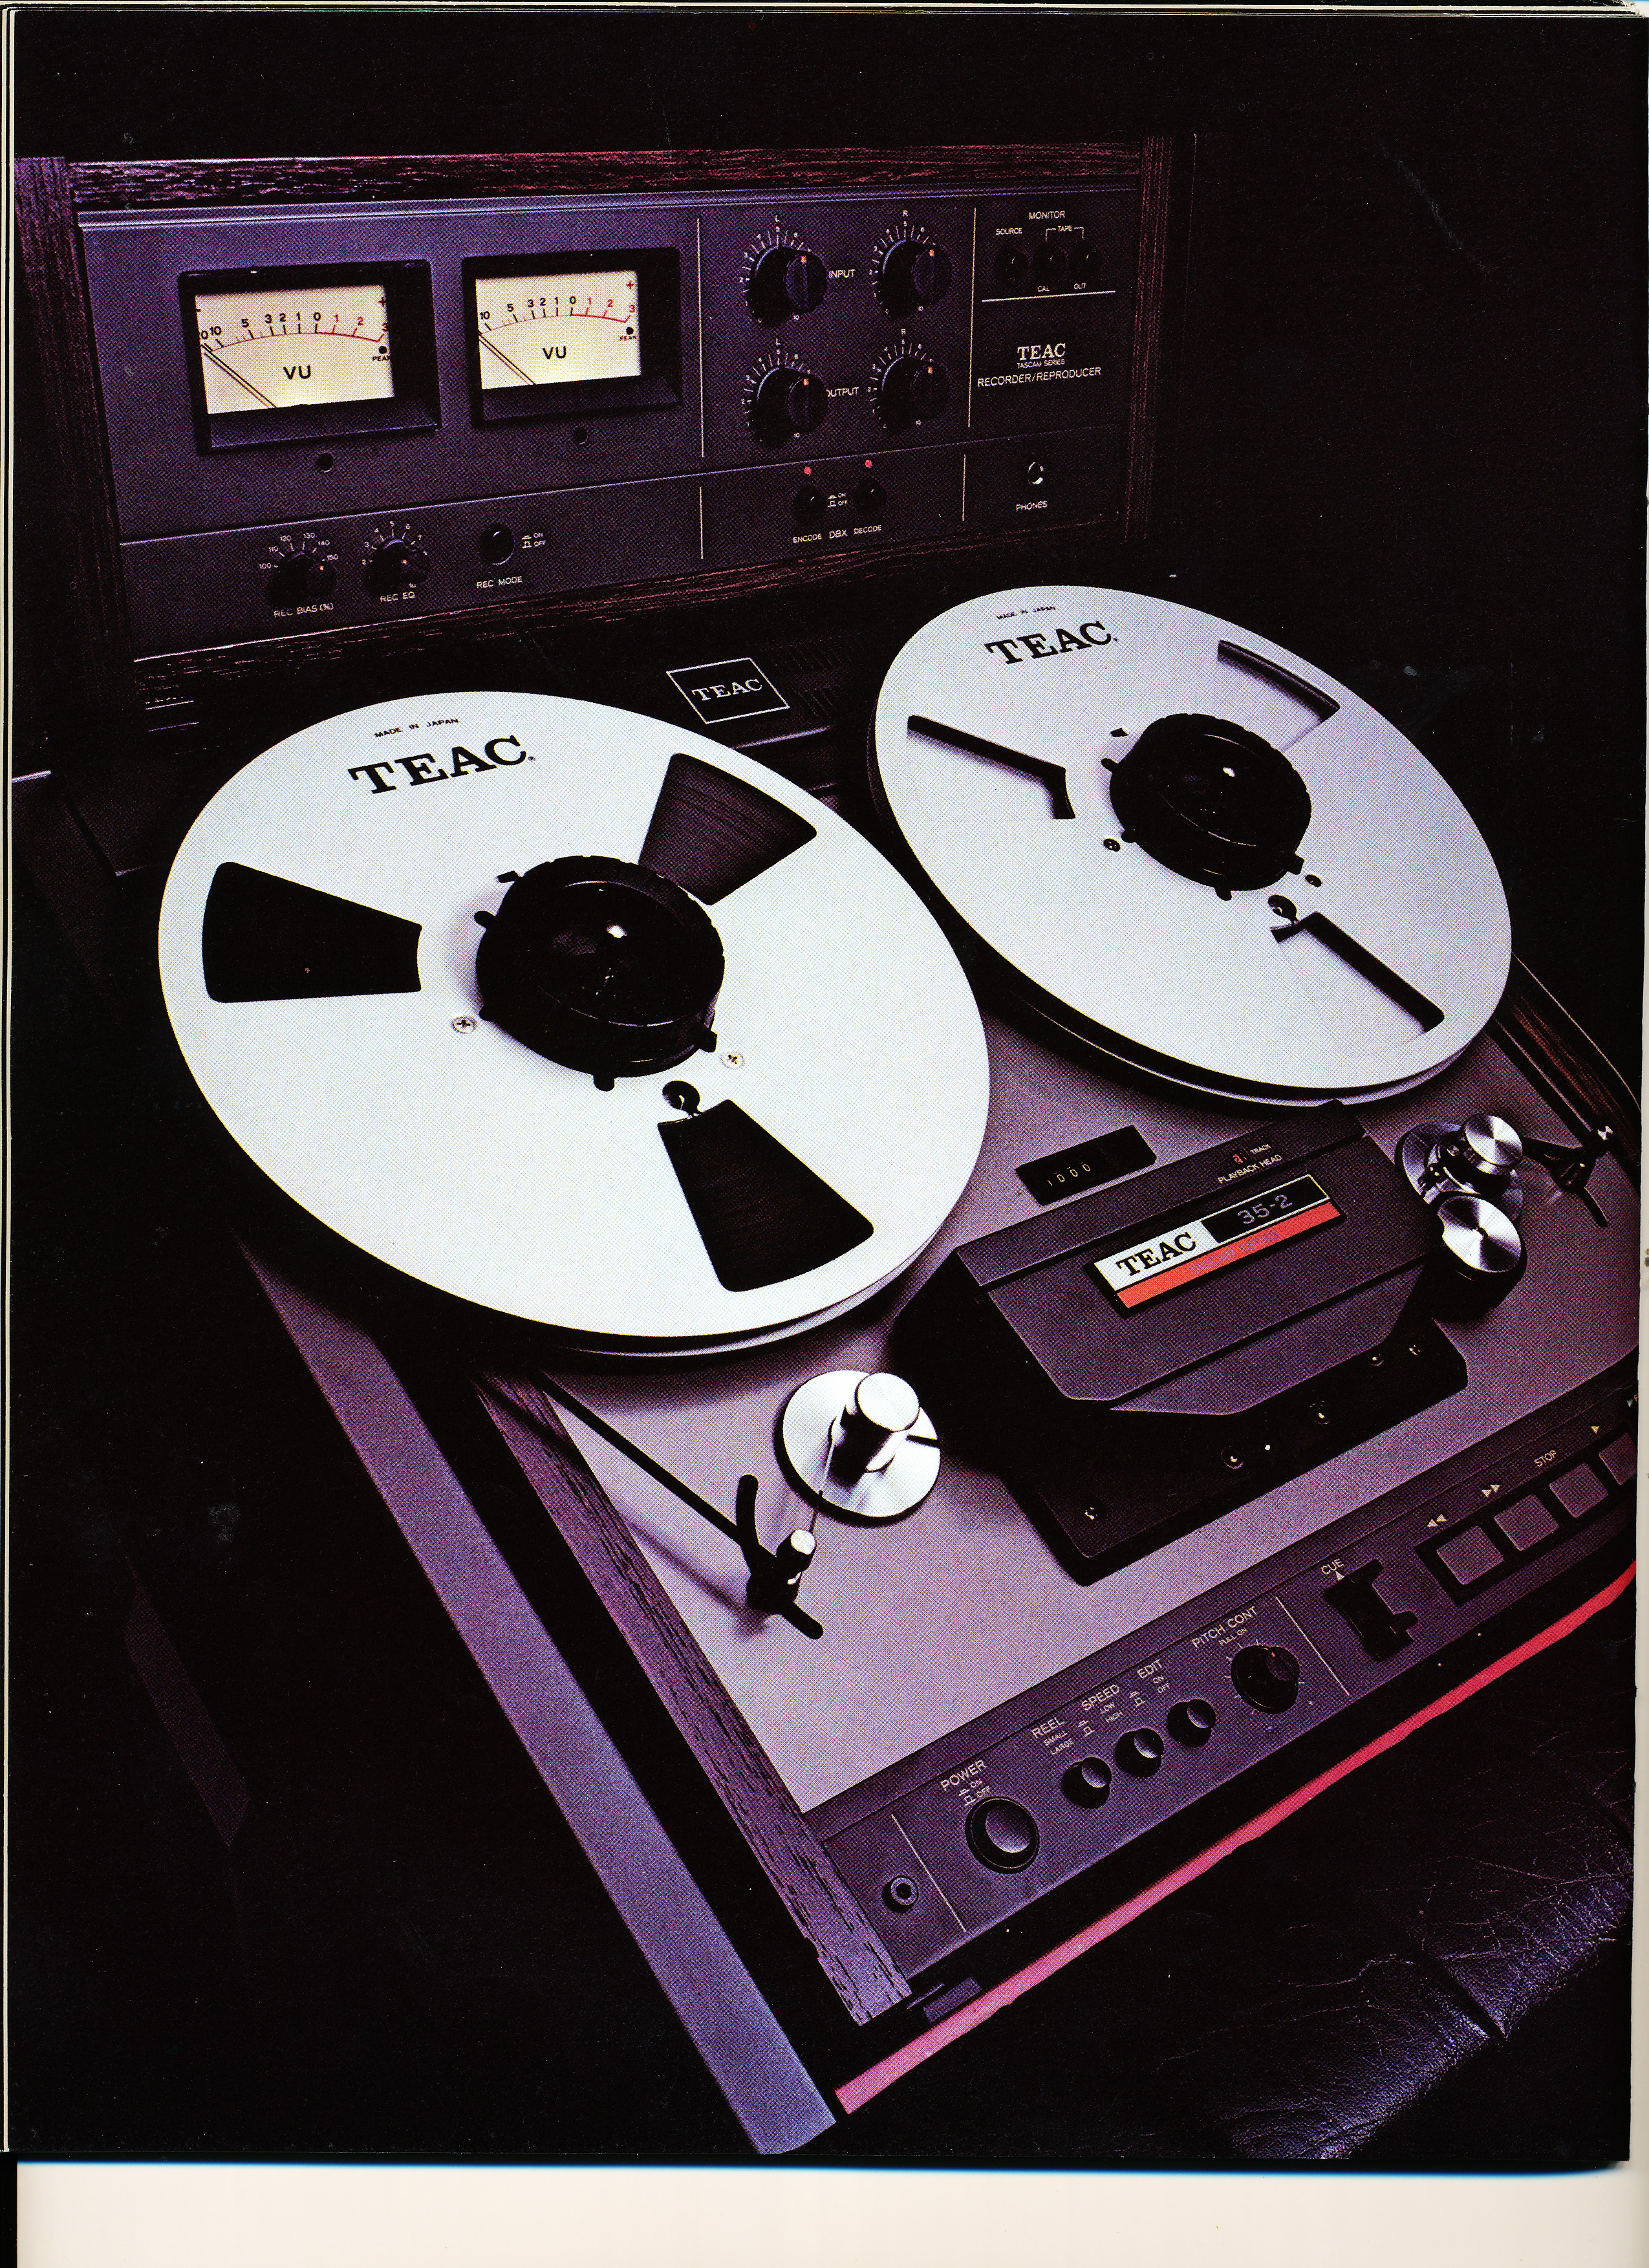 1979 ad for the Teac Tascam 35-2 2 track professional reel to reel tape recorder in the Reel2ReelTexas.com vintage recording collection Museum